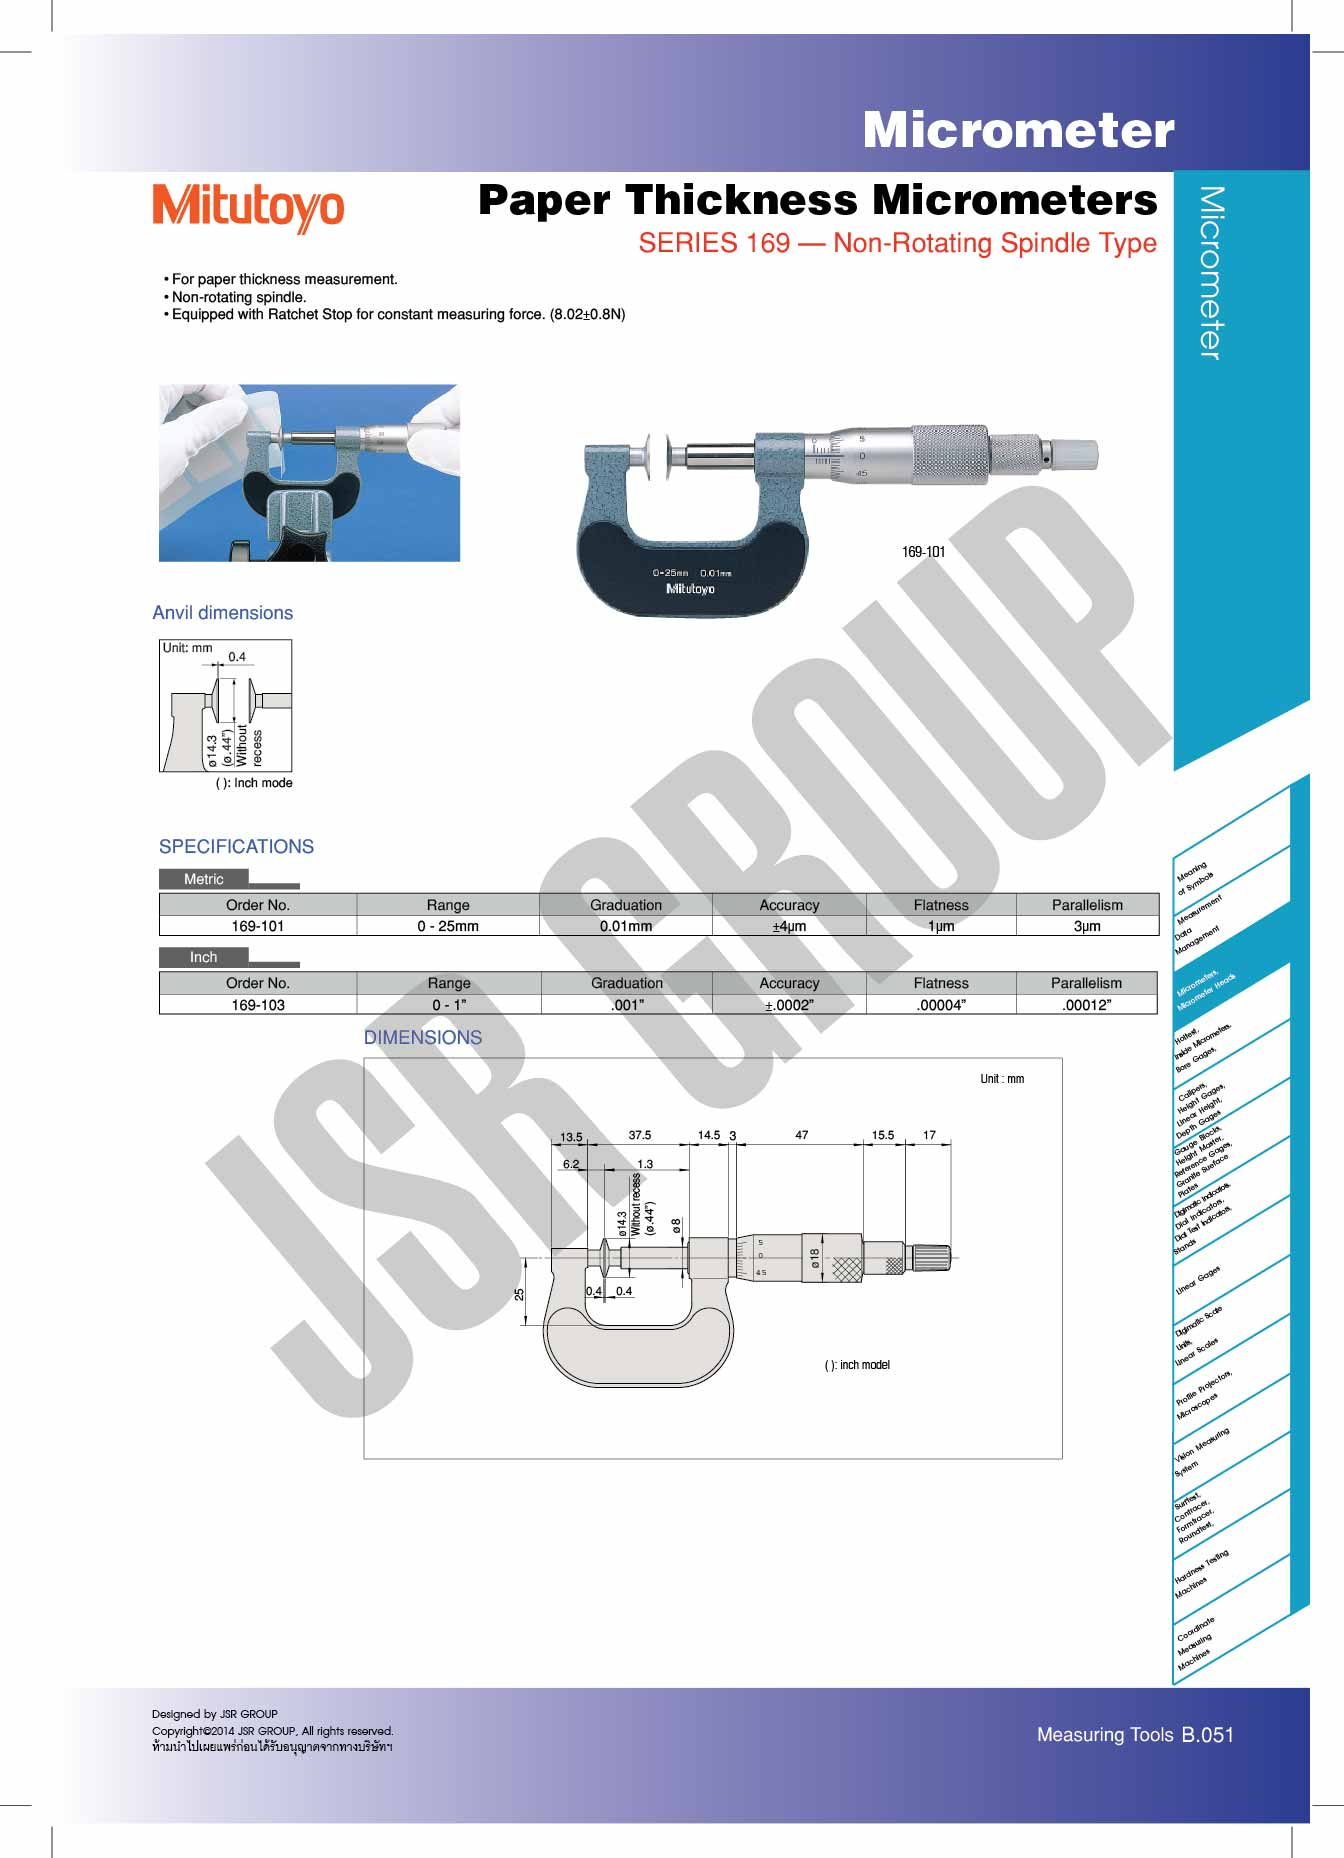 Paper Thickness Micrometers SERIES 169 Mitutoyo table